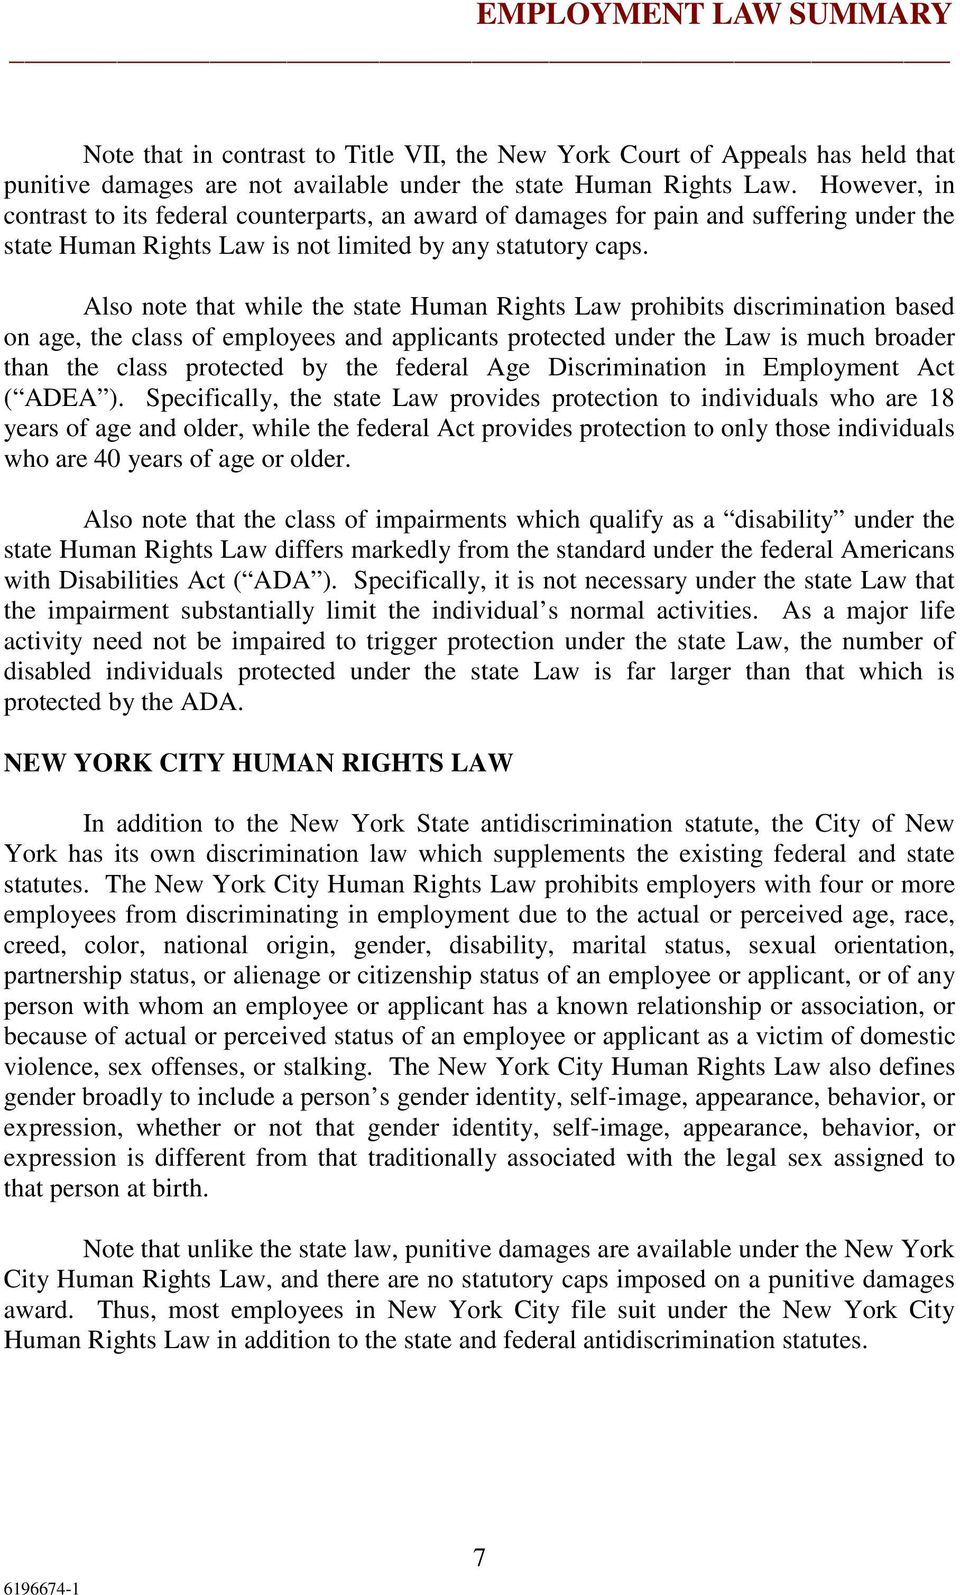 Also note that while the state Human Rights Law prohibits discrimination based on age, the class of employees and applicants protected under the Law is much broader than the class protected by the